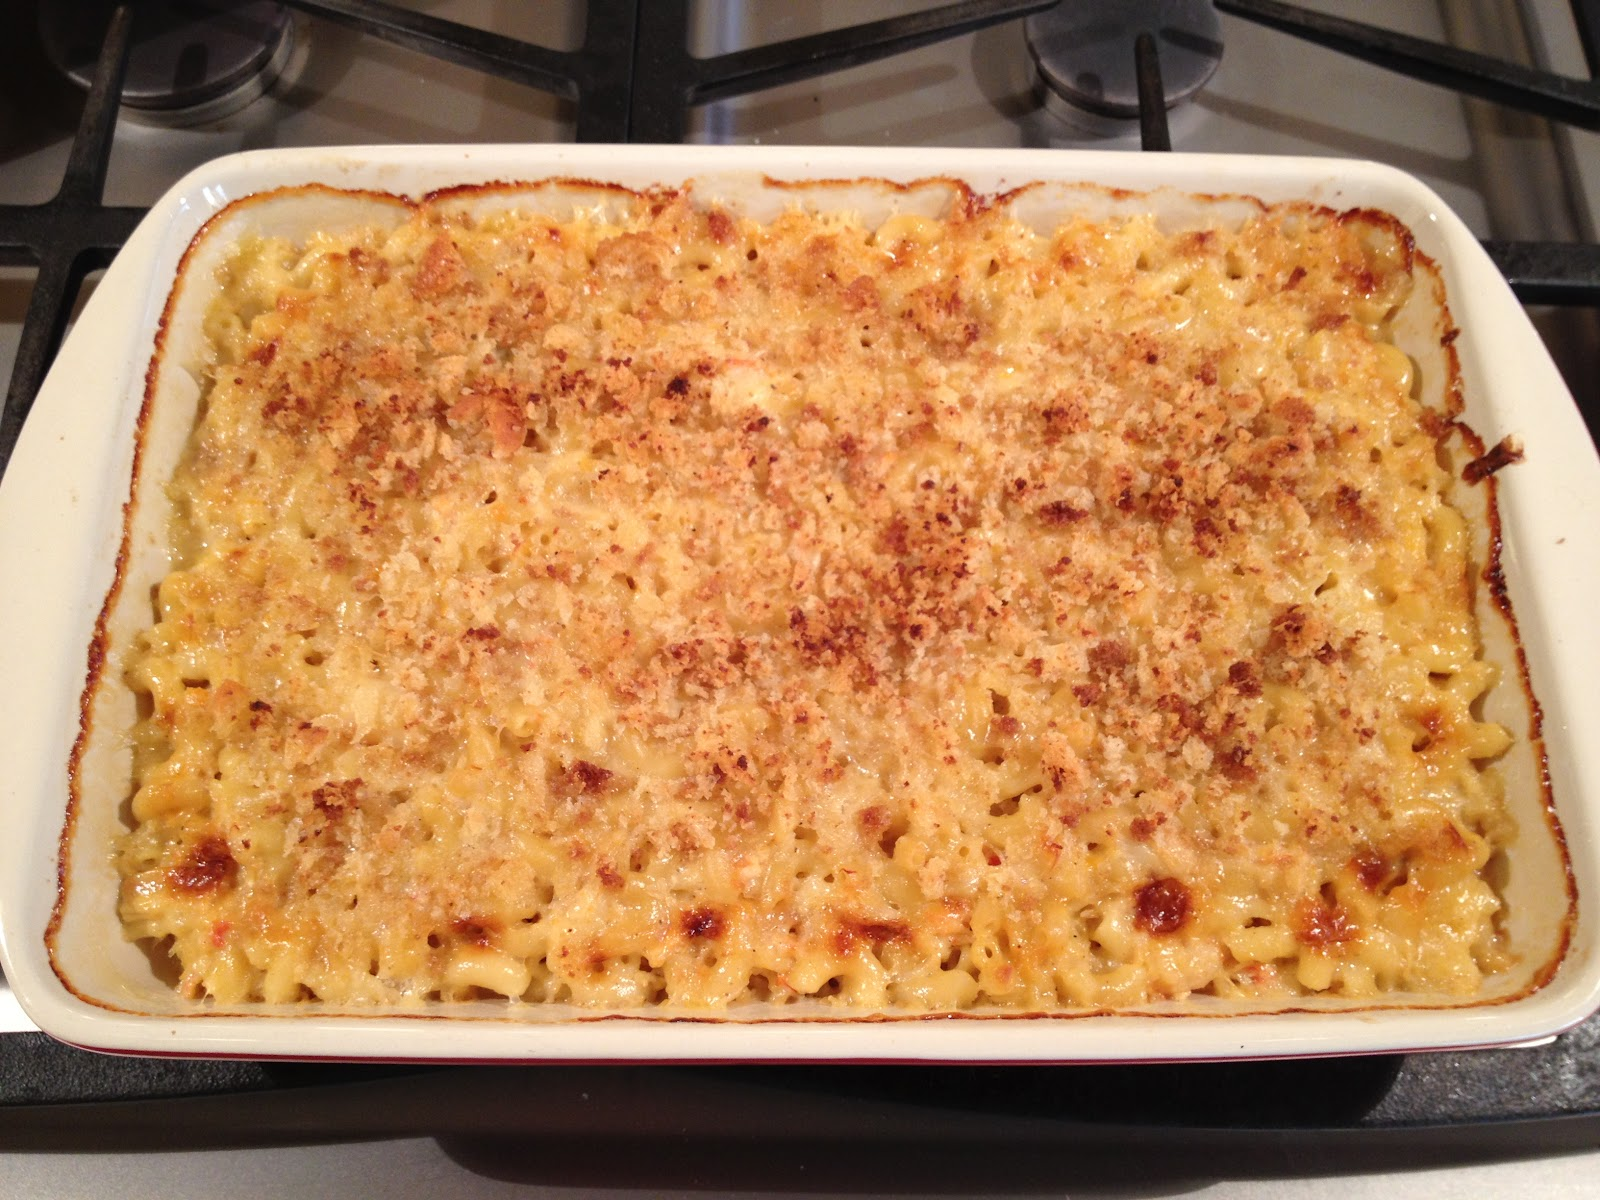 Barefoot Contessa Mac And Cheese a drinkable feast: say cheese! homemade fresh crab and shrimp mac